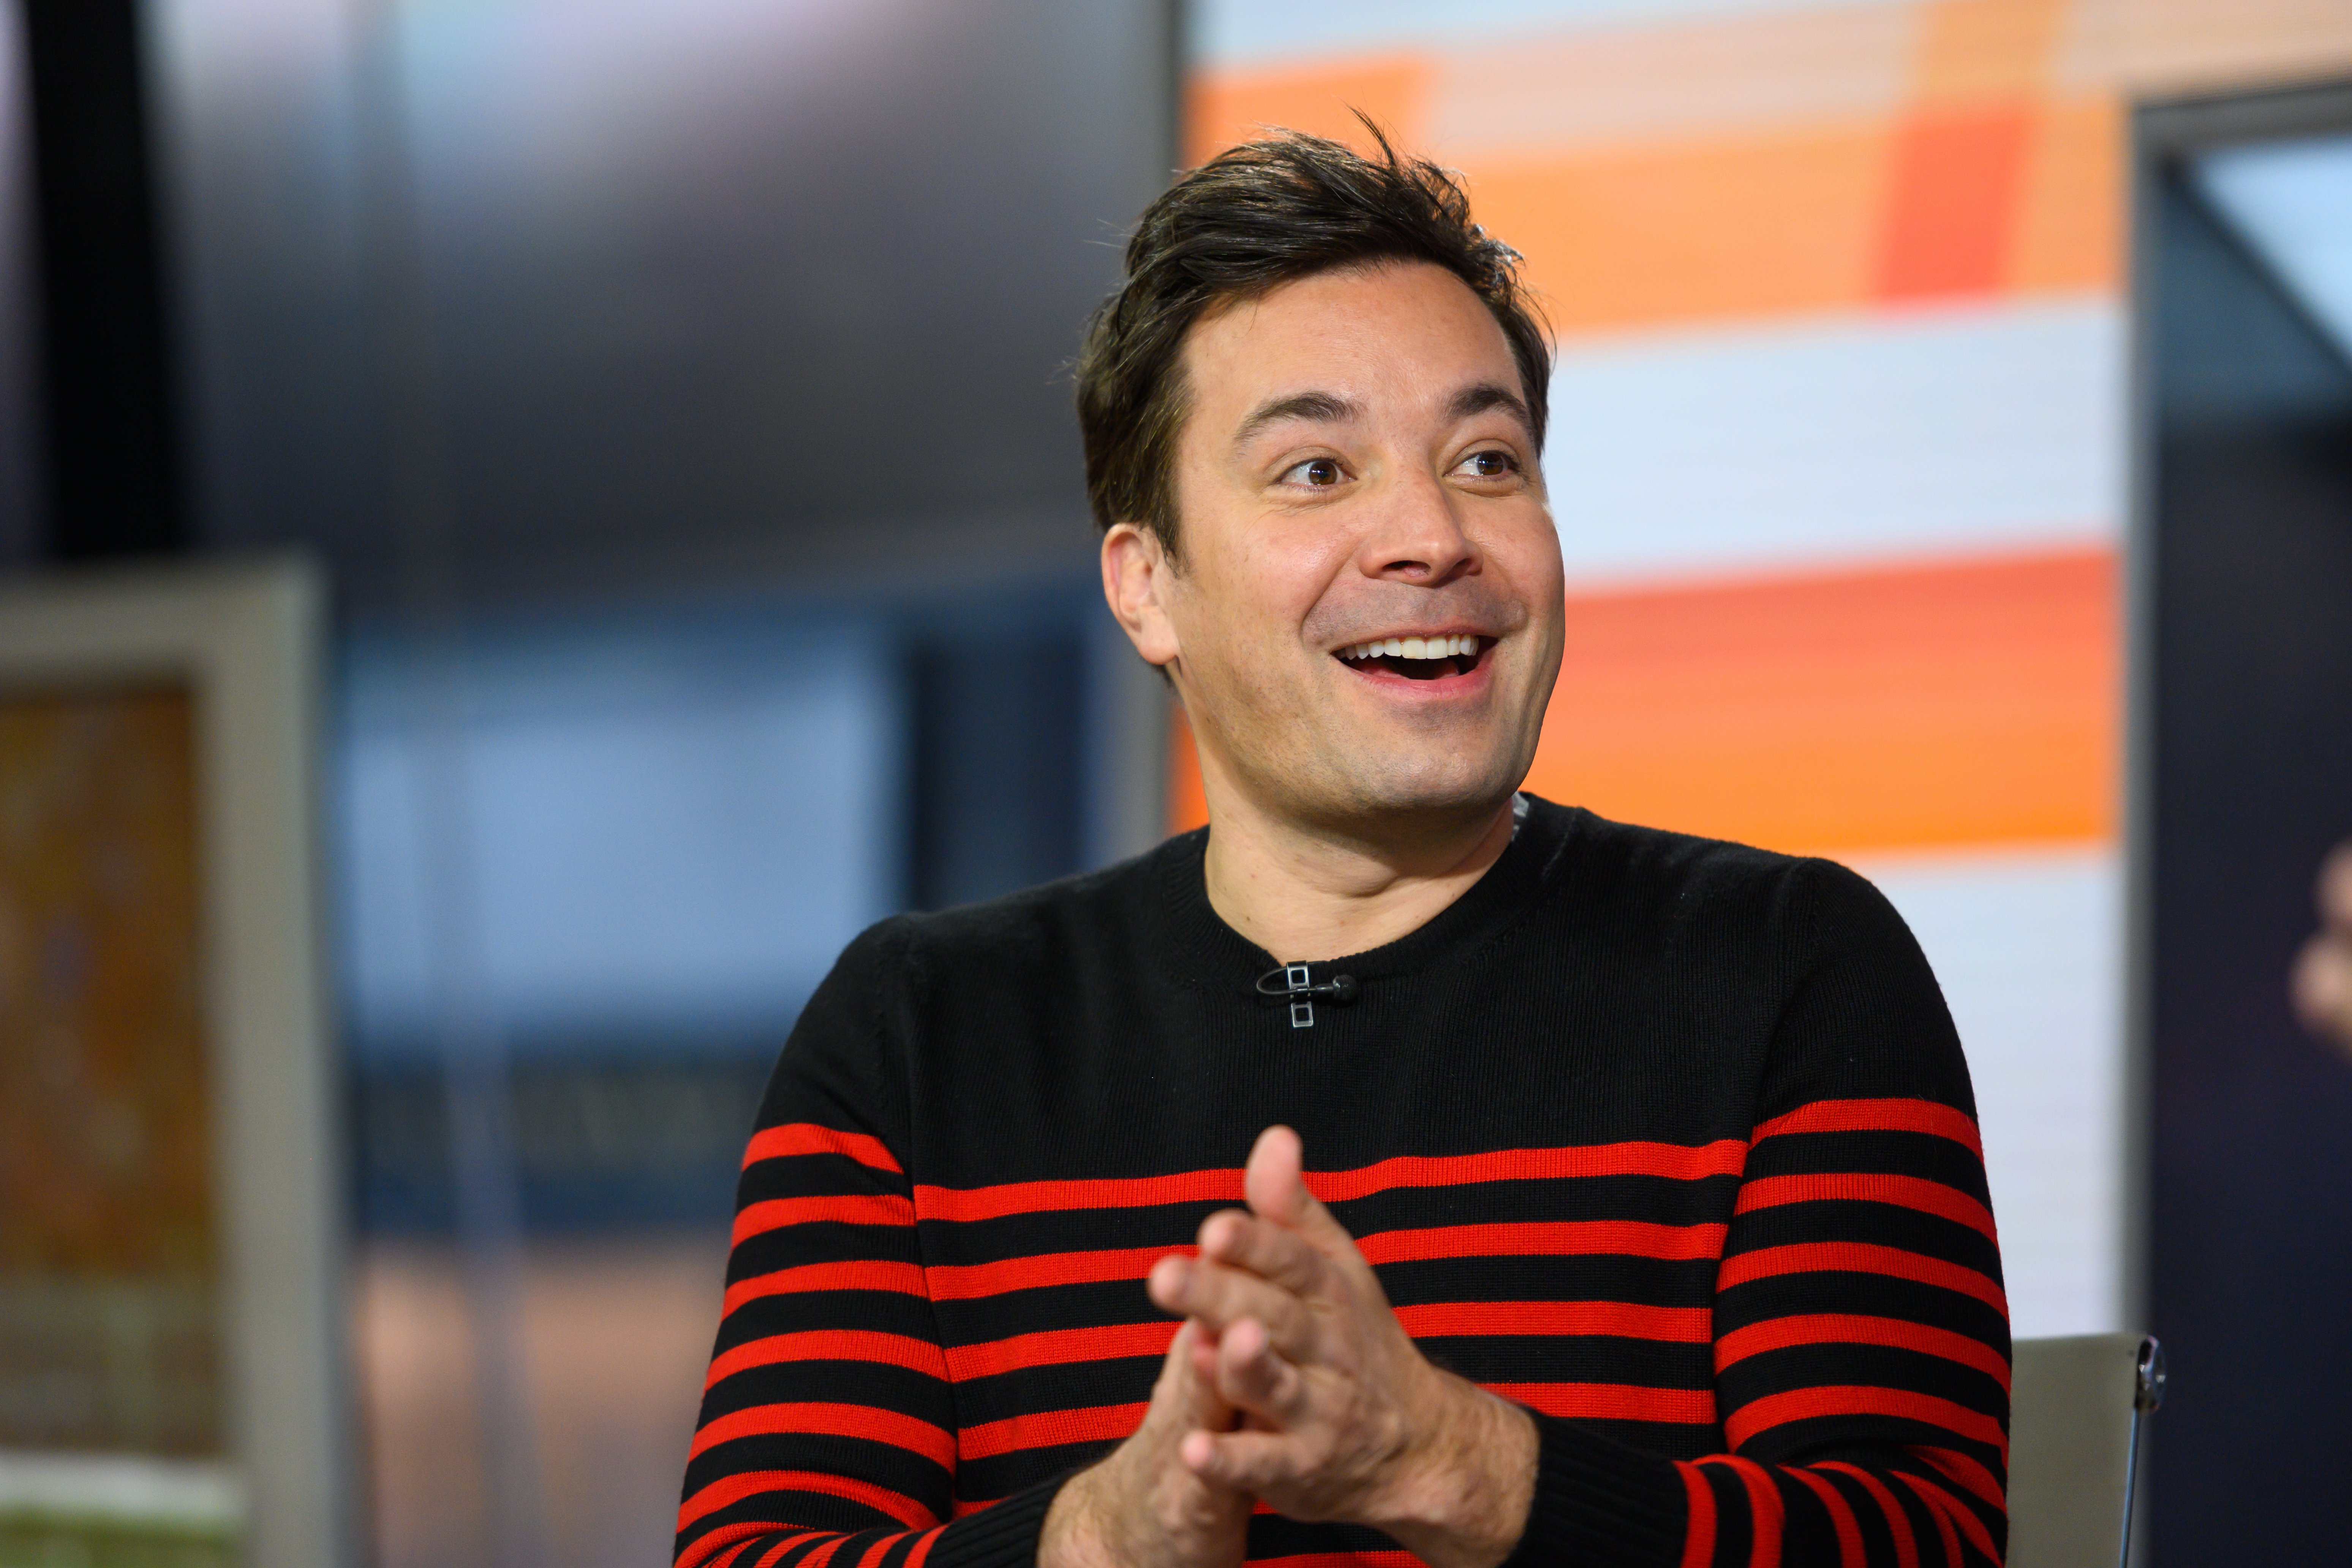 Jimmy Fallon on Today January 28, 2020 | Photo: Getty Images